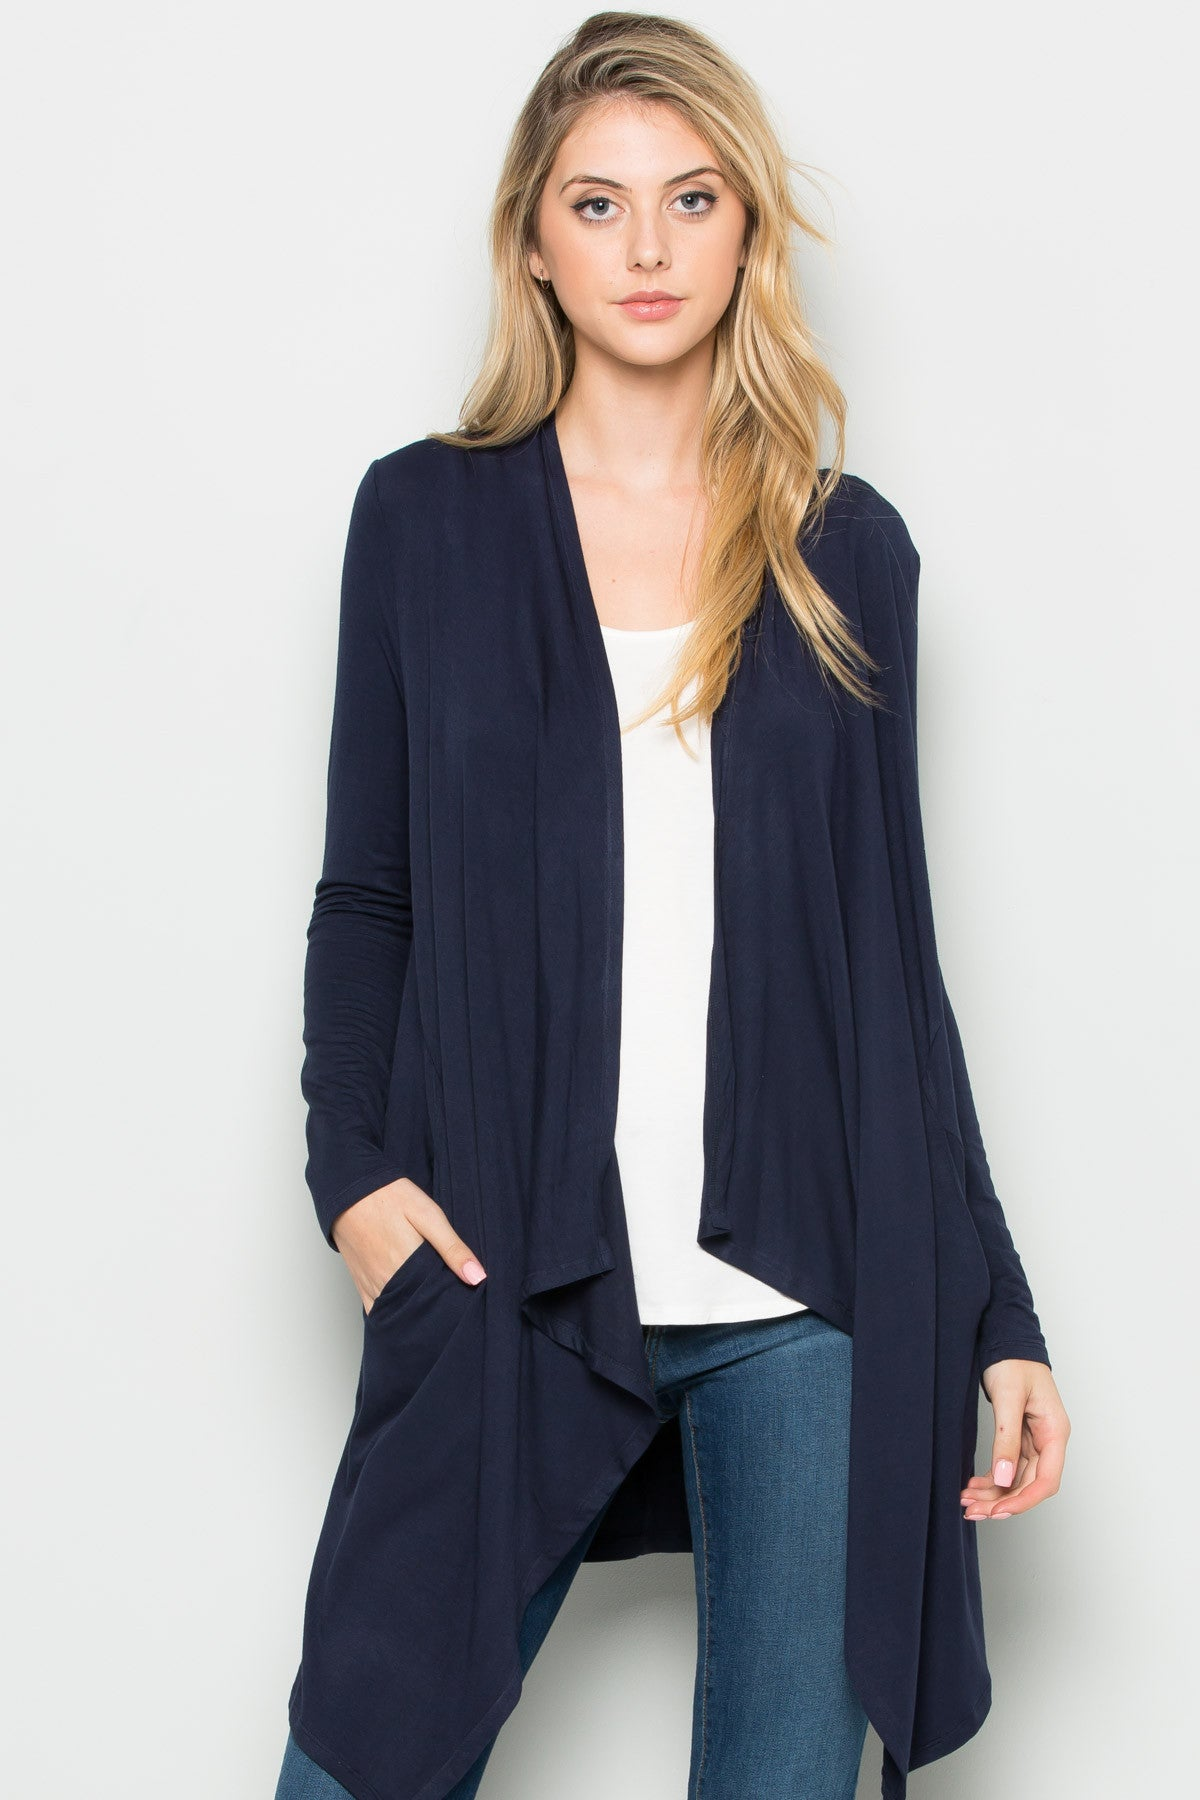 Navy Lightweight Long Sleeve Cardigan - Jacket - My Yuccie - 6